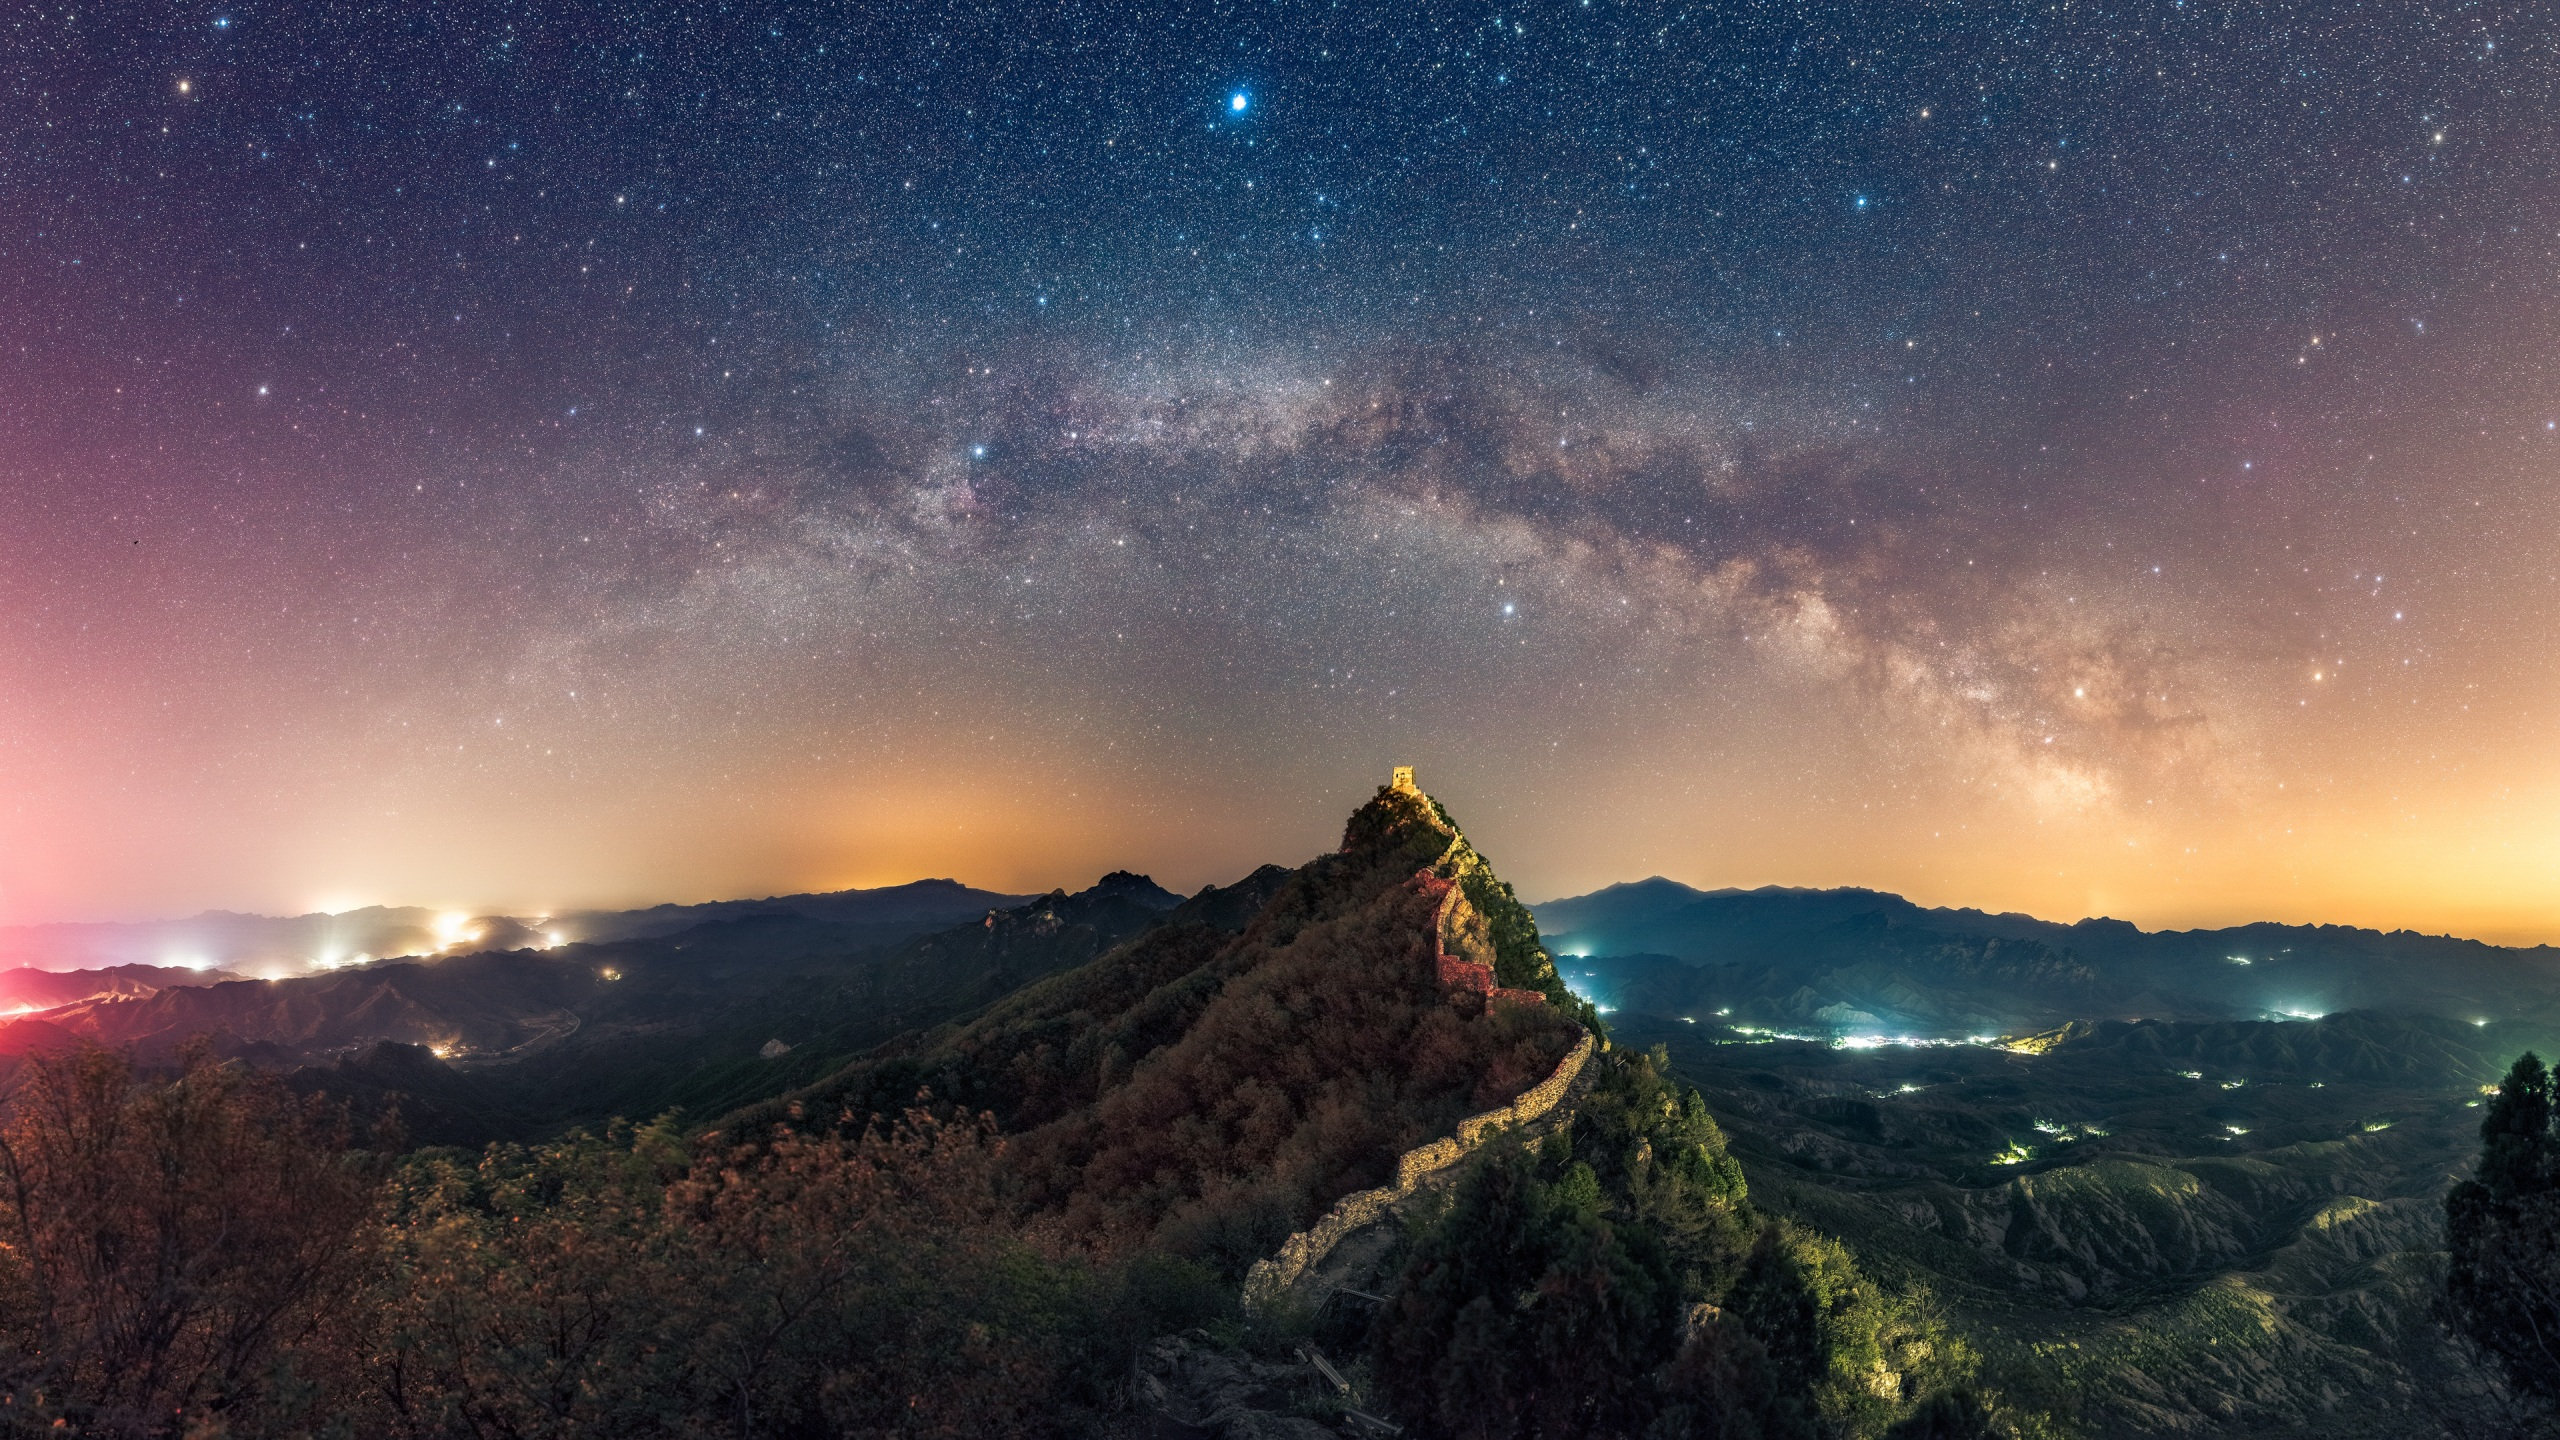 Wallpaper Stars Nature Mountains The Great Wall of China 2560x1440 2560x1440